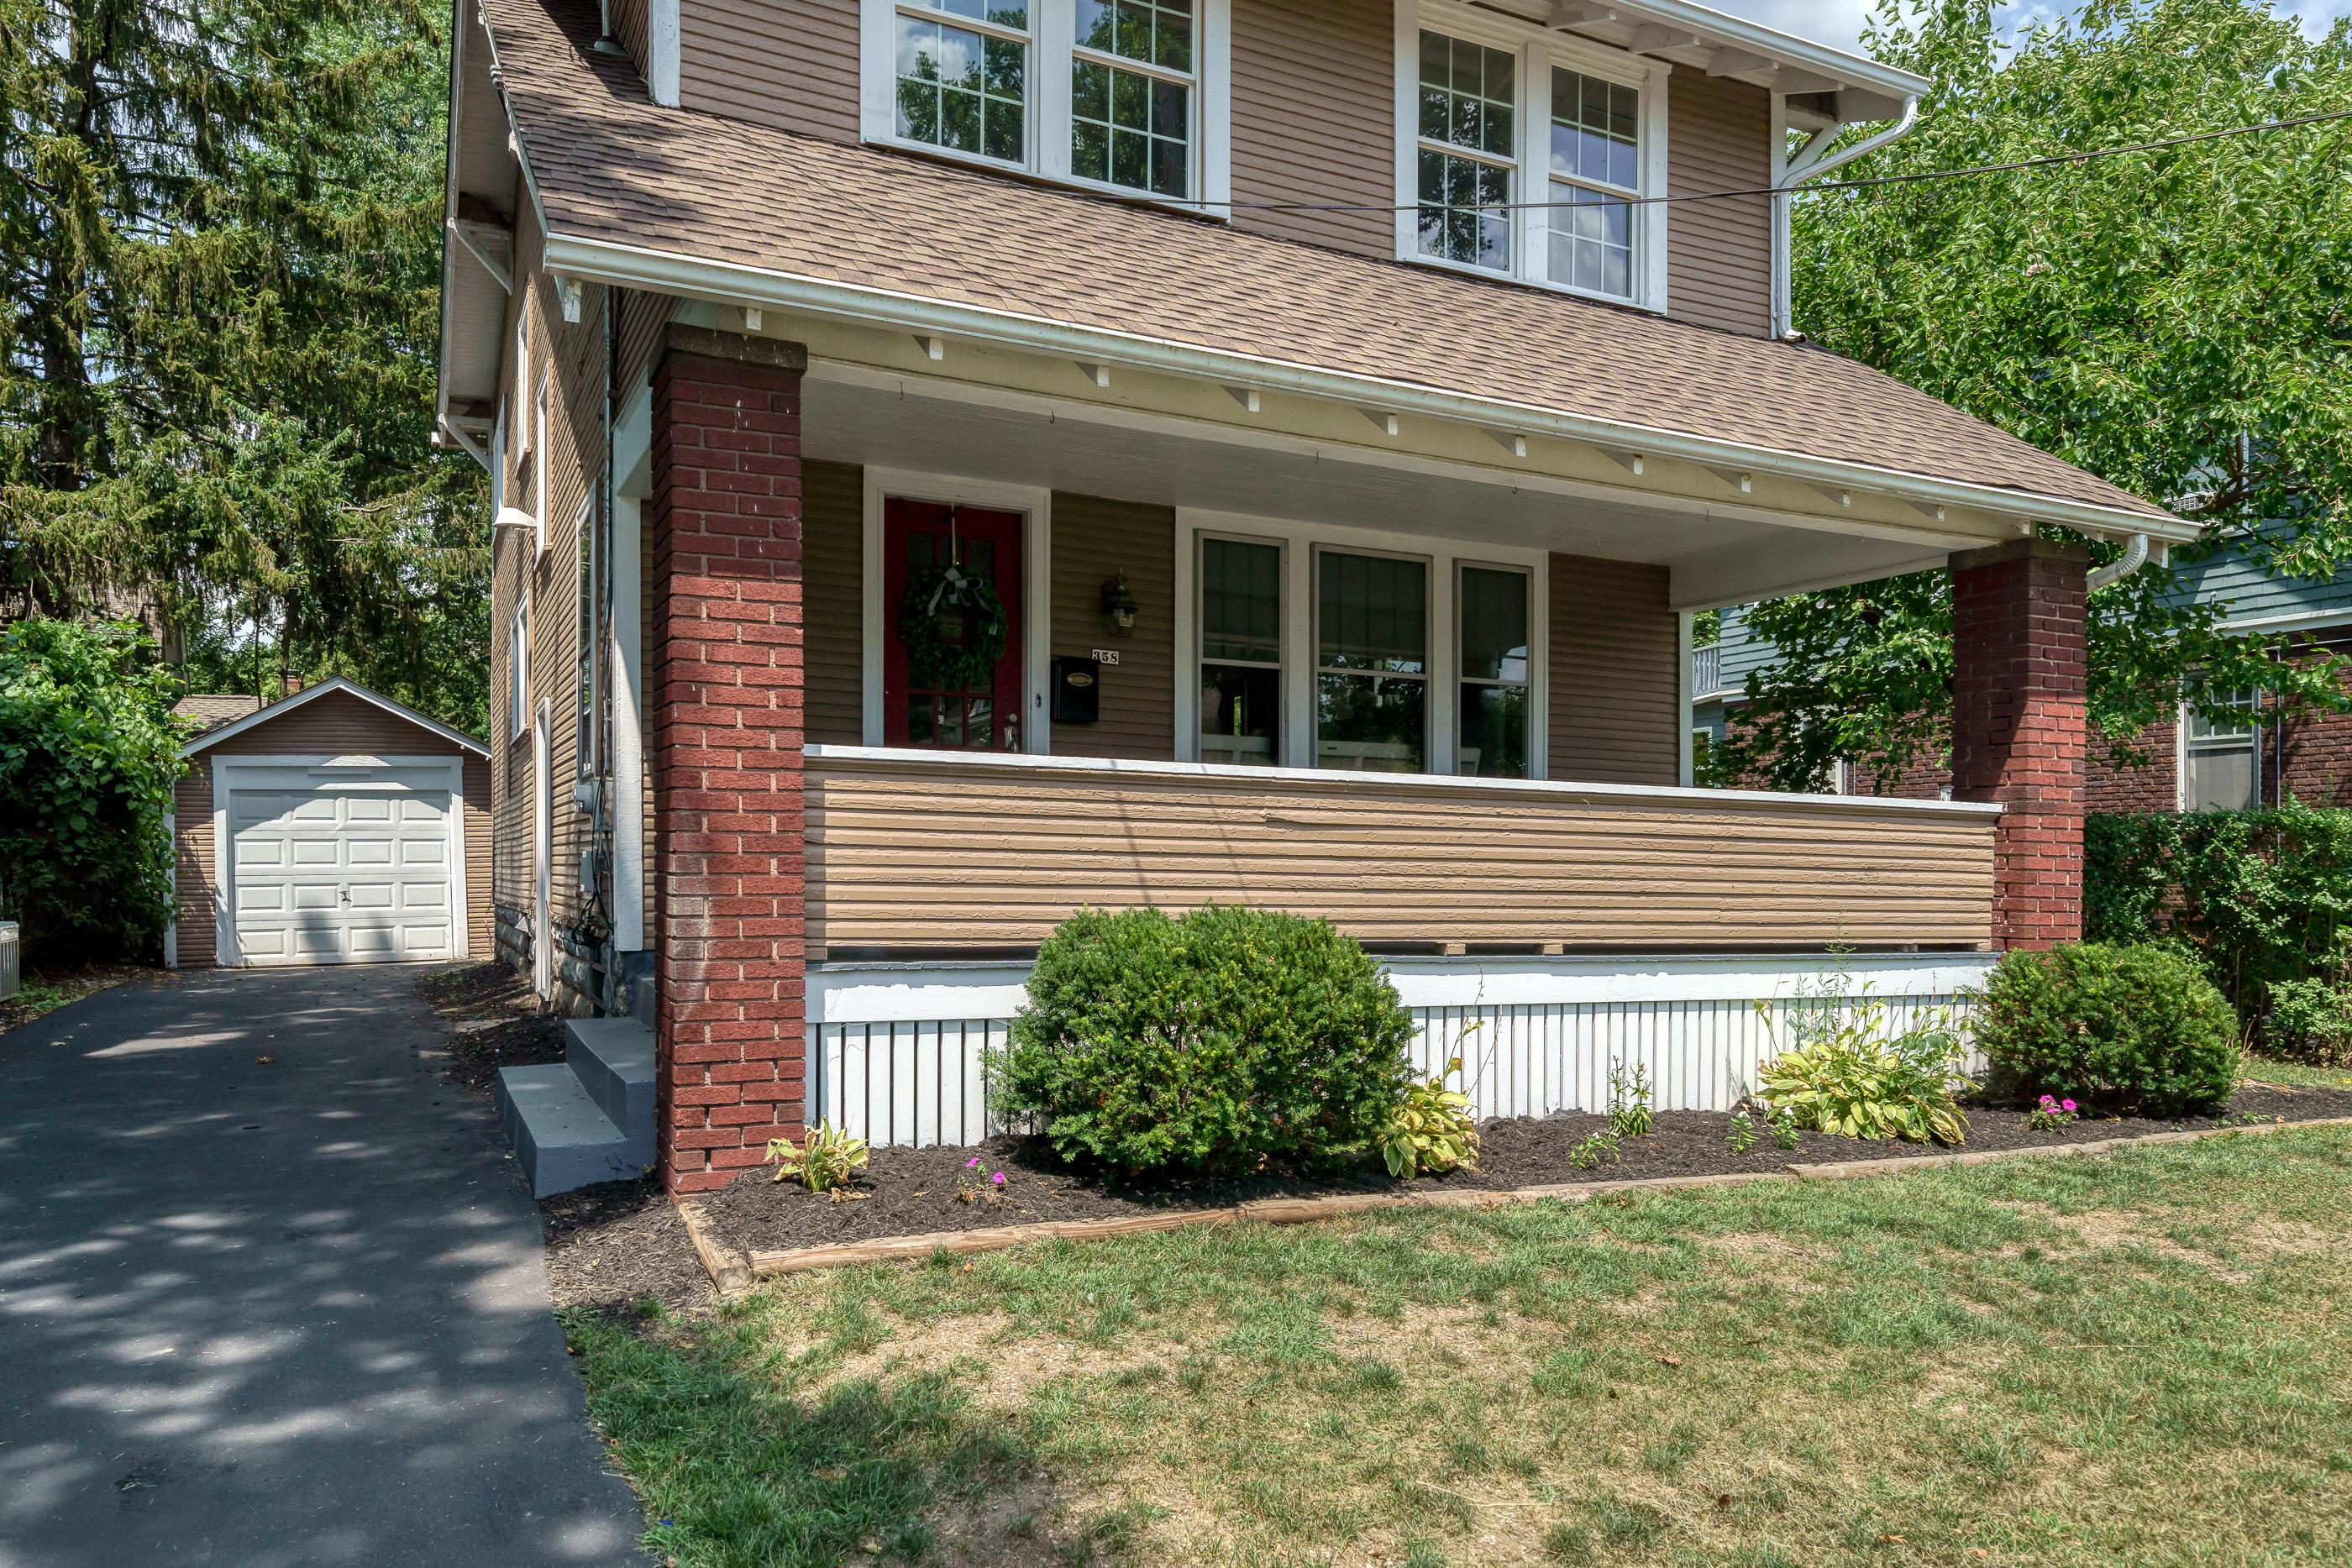 Photo of 358 Weber Road, Columbus, OH 43202